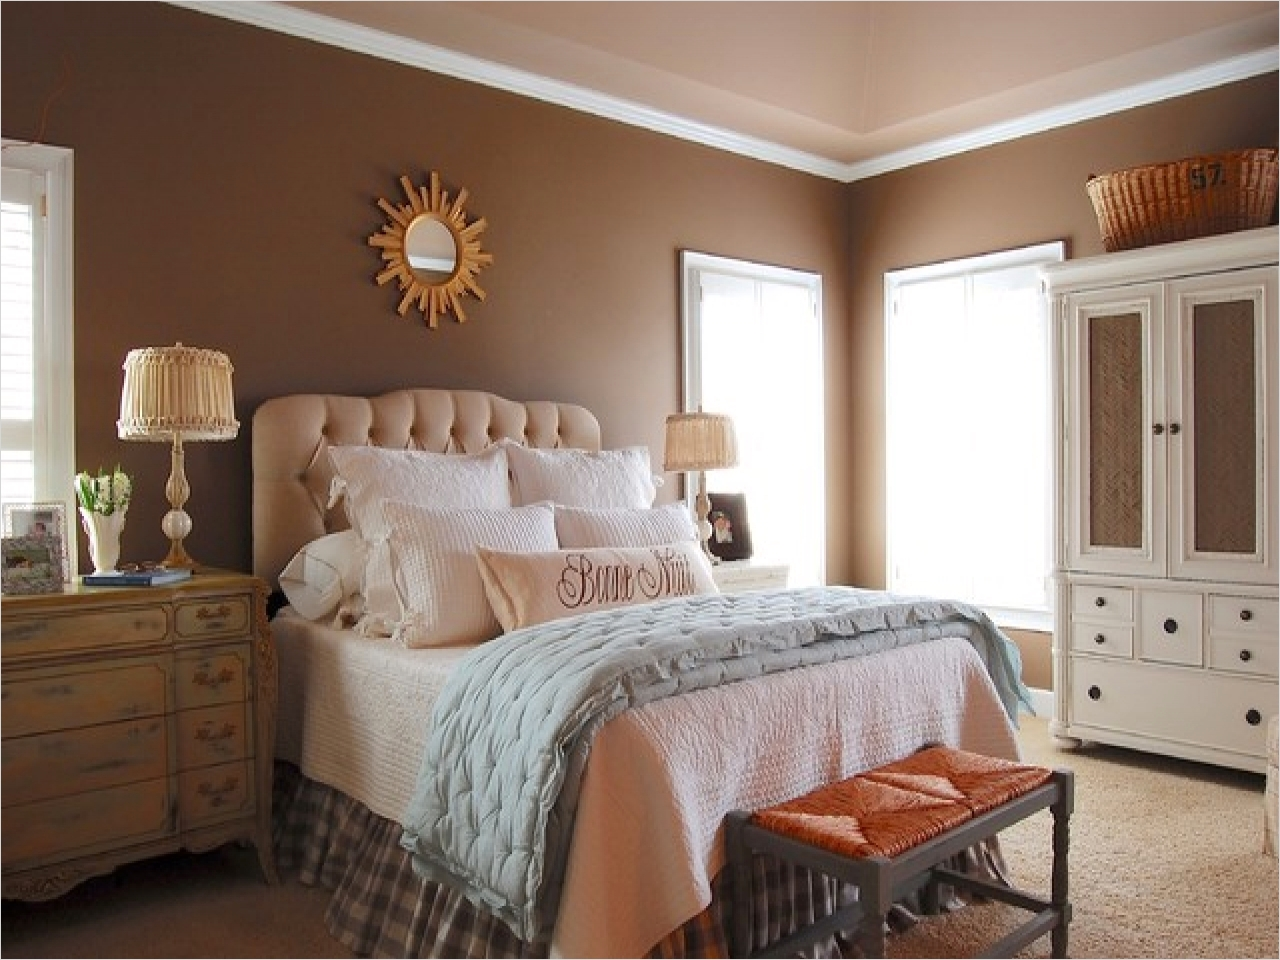 43 Stunning Country Farmhouse Bedroom Ideas 77 Country Bedroom Paint Colors French Country Farmhouse Bedroom Colors French Country Farmhouse 5